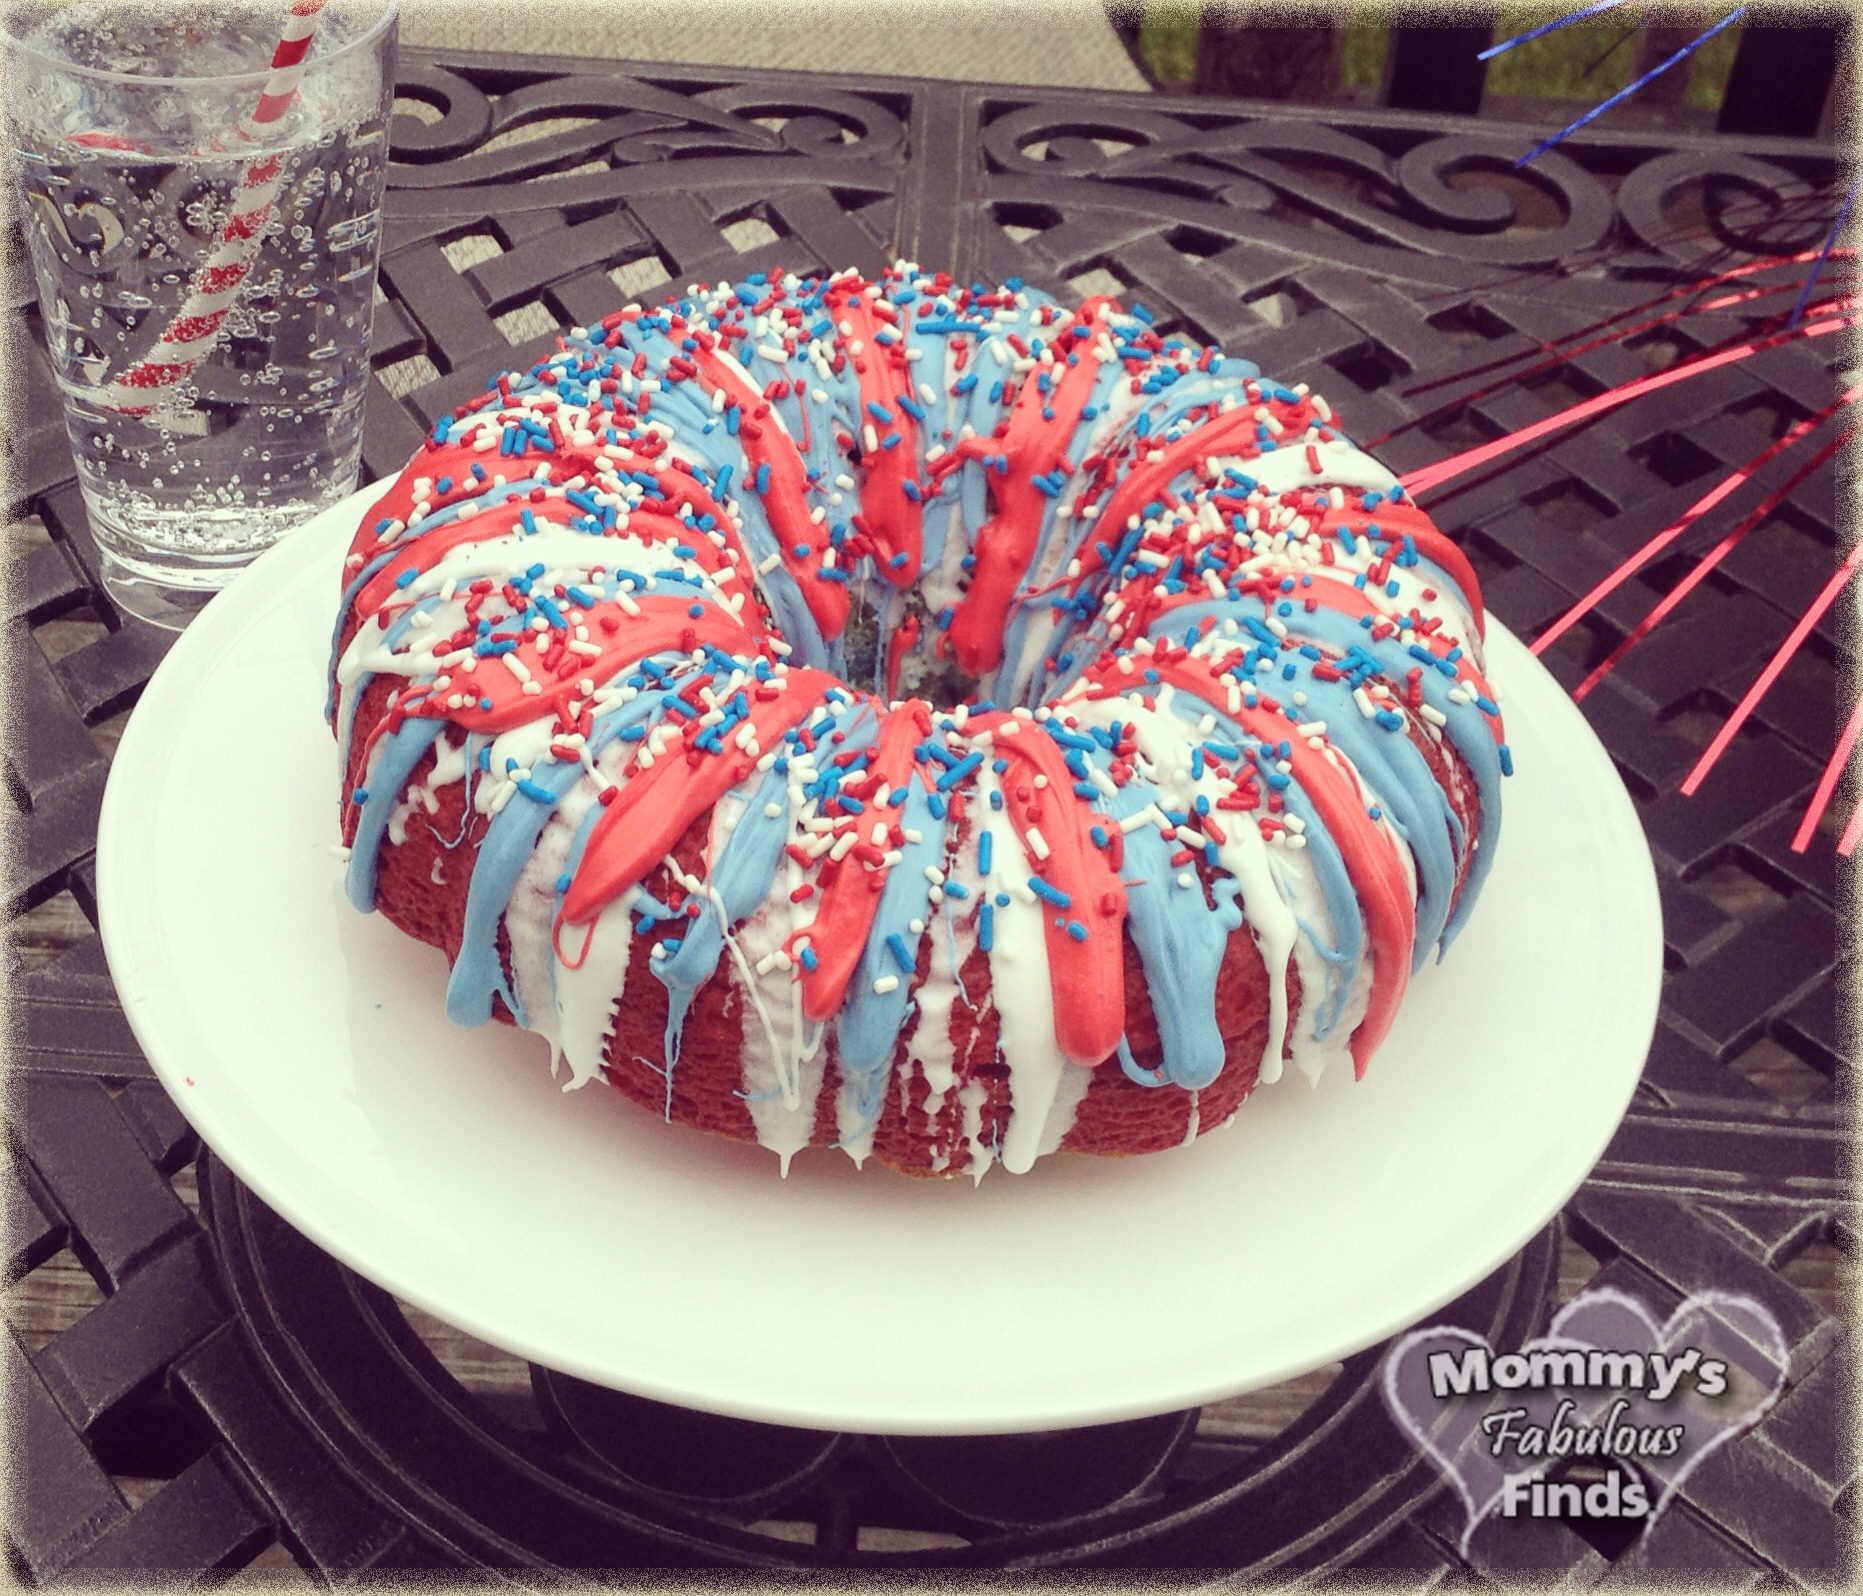 ... with our family, I can't wait to make it for our 4th of July party